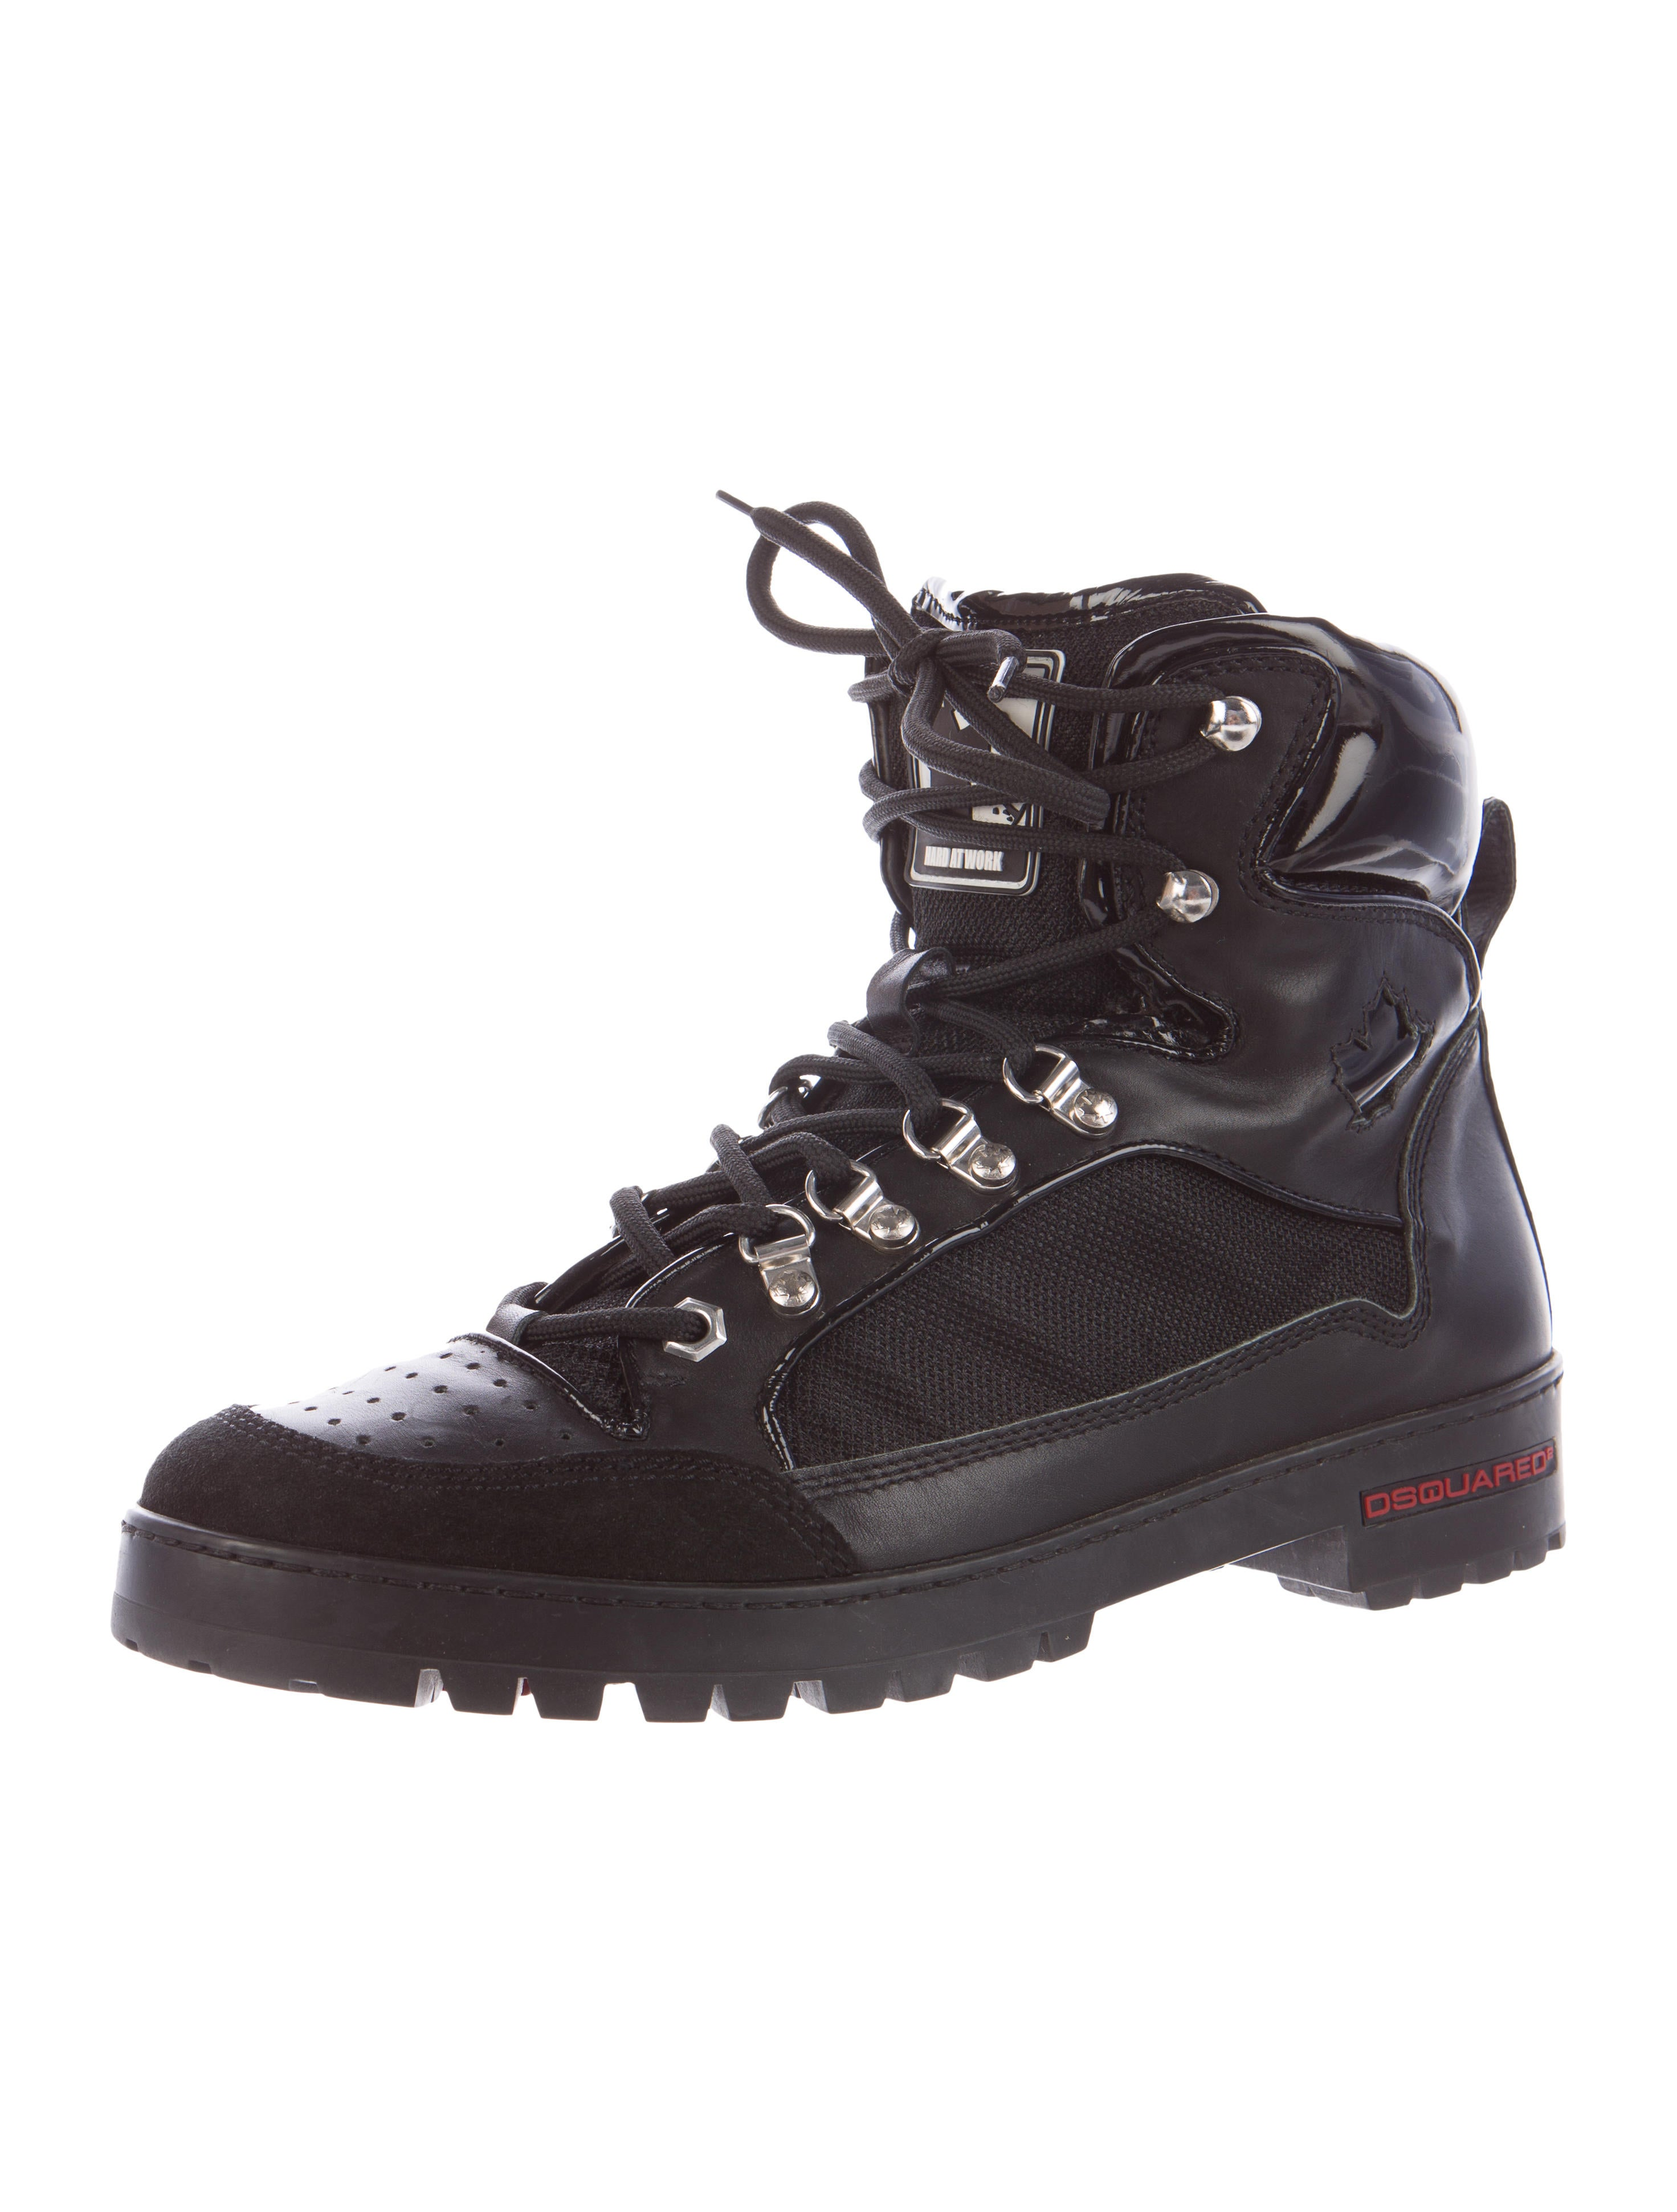 dsquared 178 combat boots shoes dsq23019 the realreal